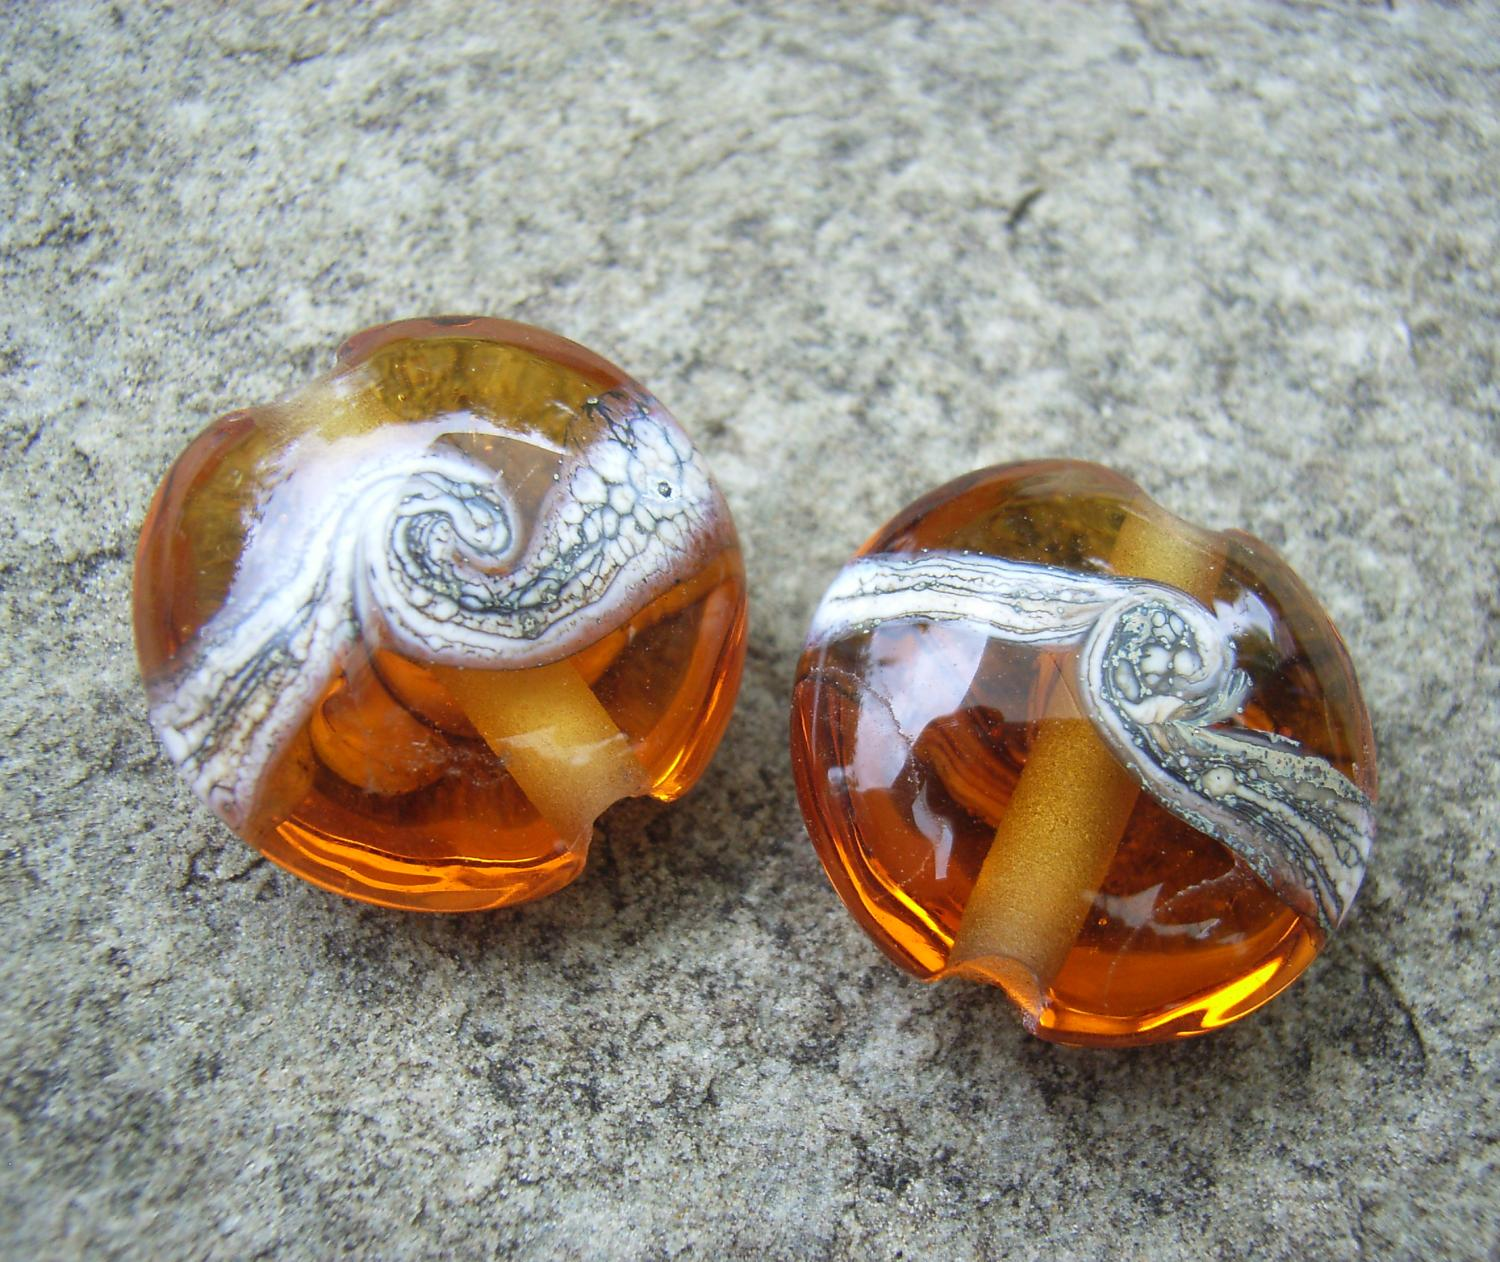 Silvered Ivory Swirl 18mm Medium Amber Lentil Handmade Artisan Glass Lampwork Beads - By the Bead, (Made to Order)